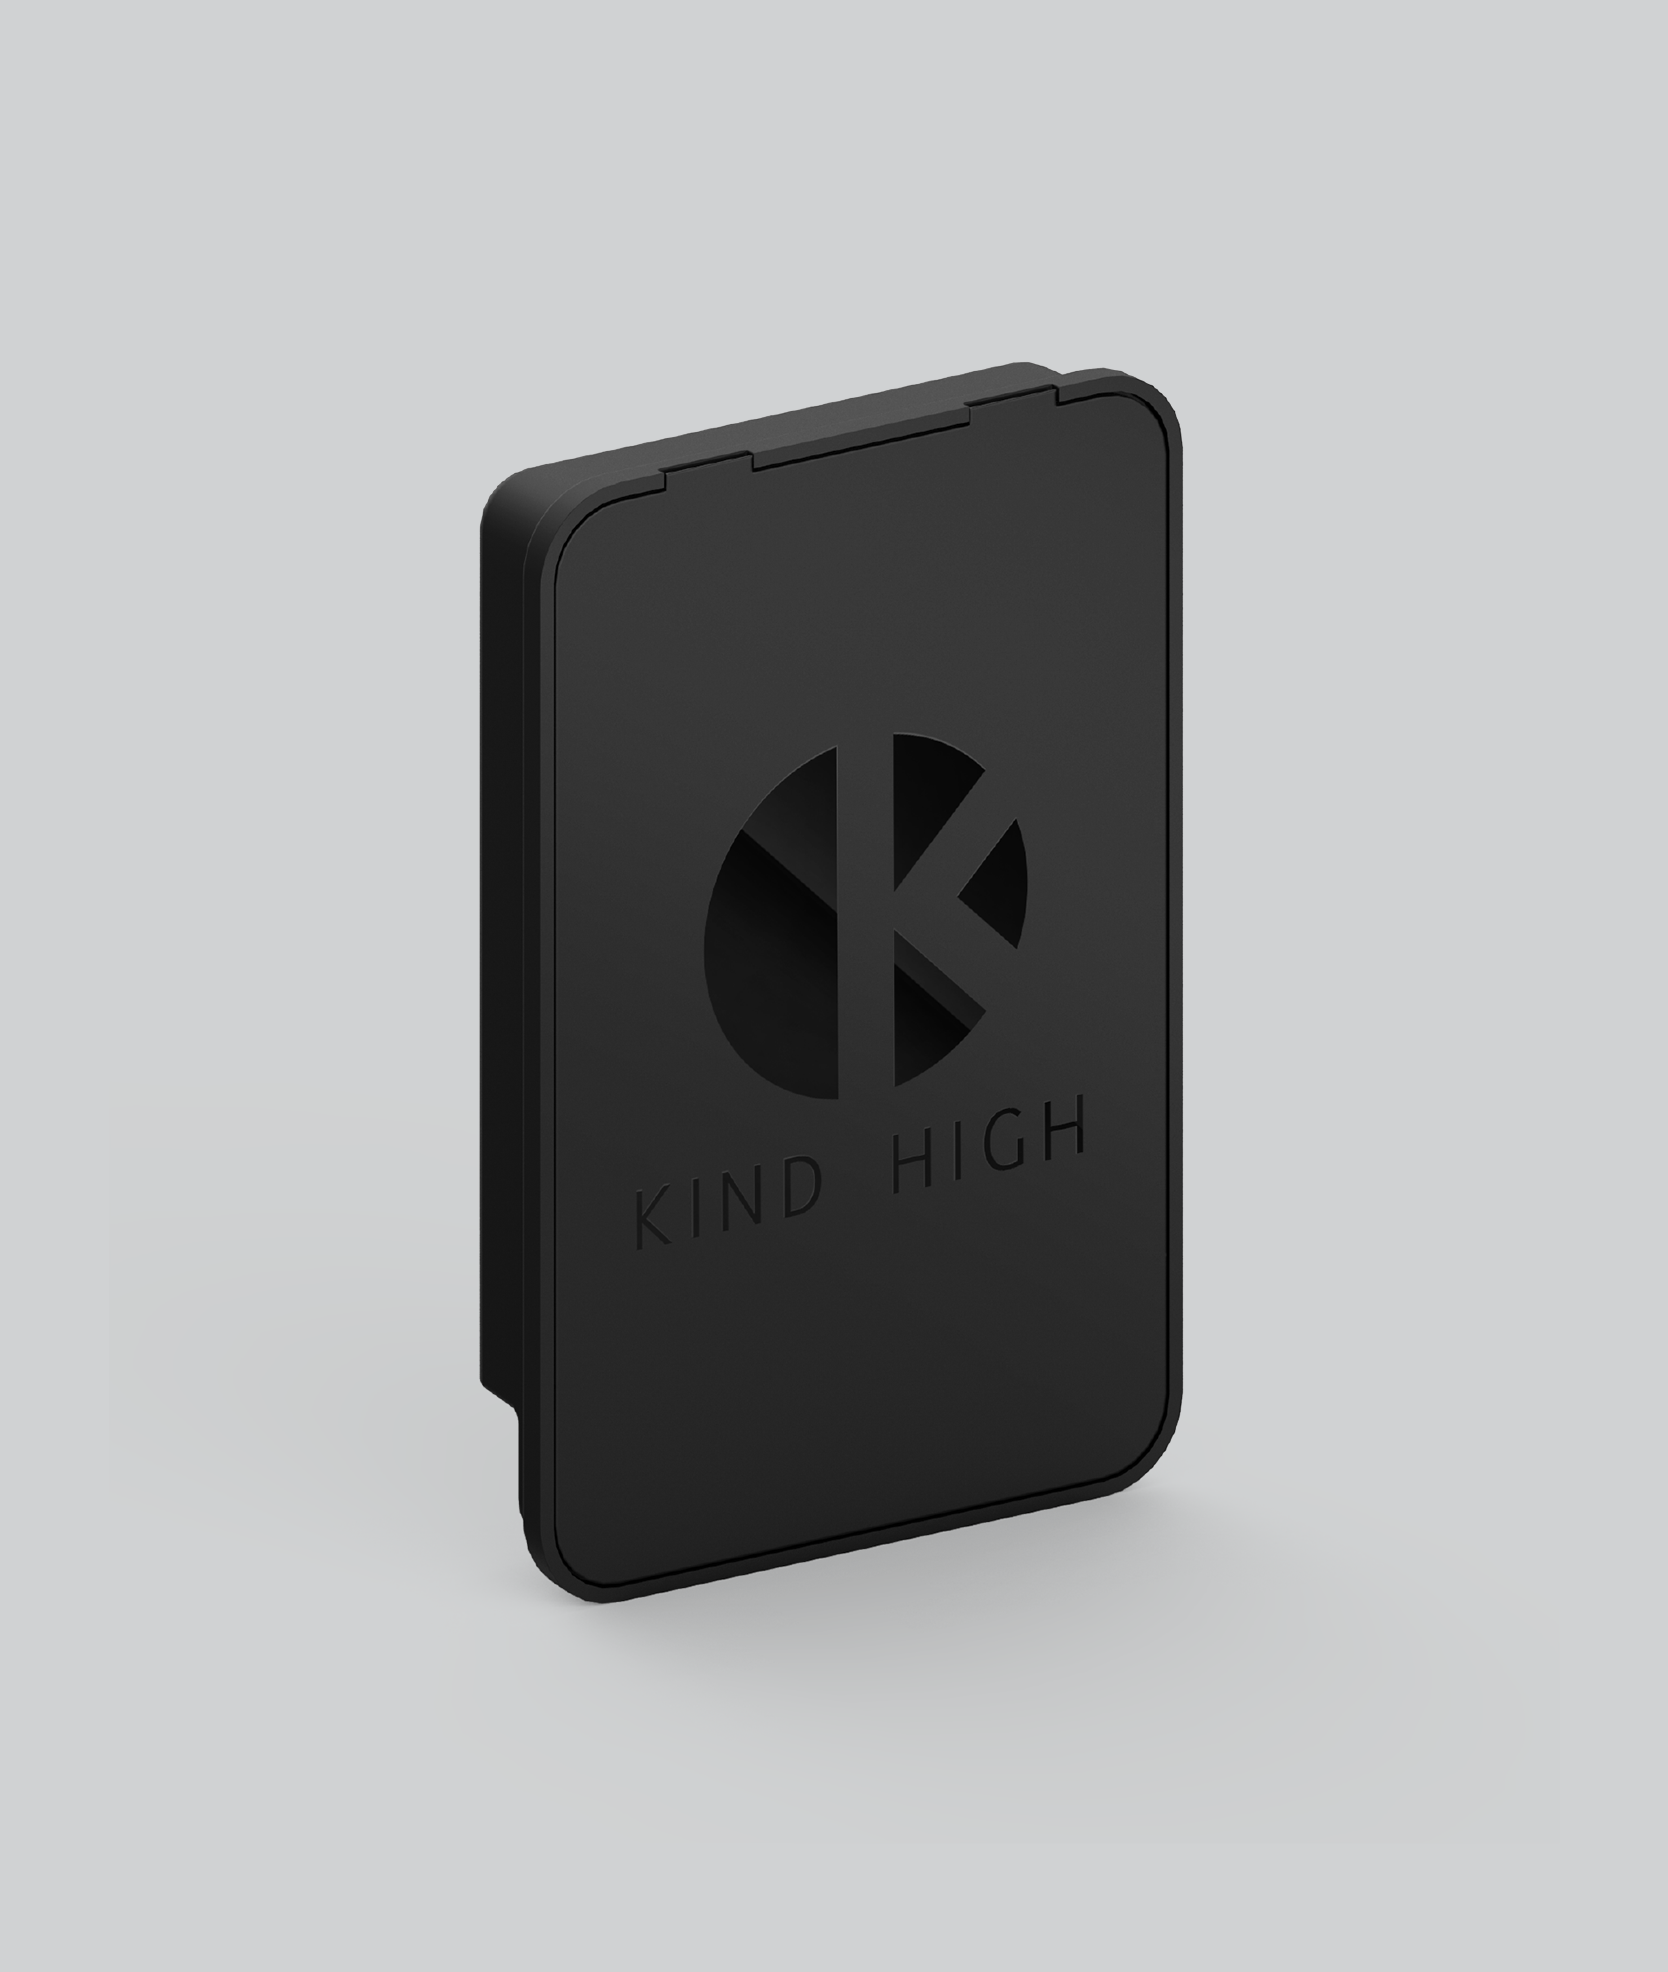 kindhigh-snaptech-case-cannabis-containers